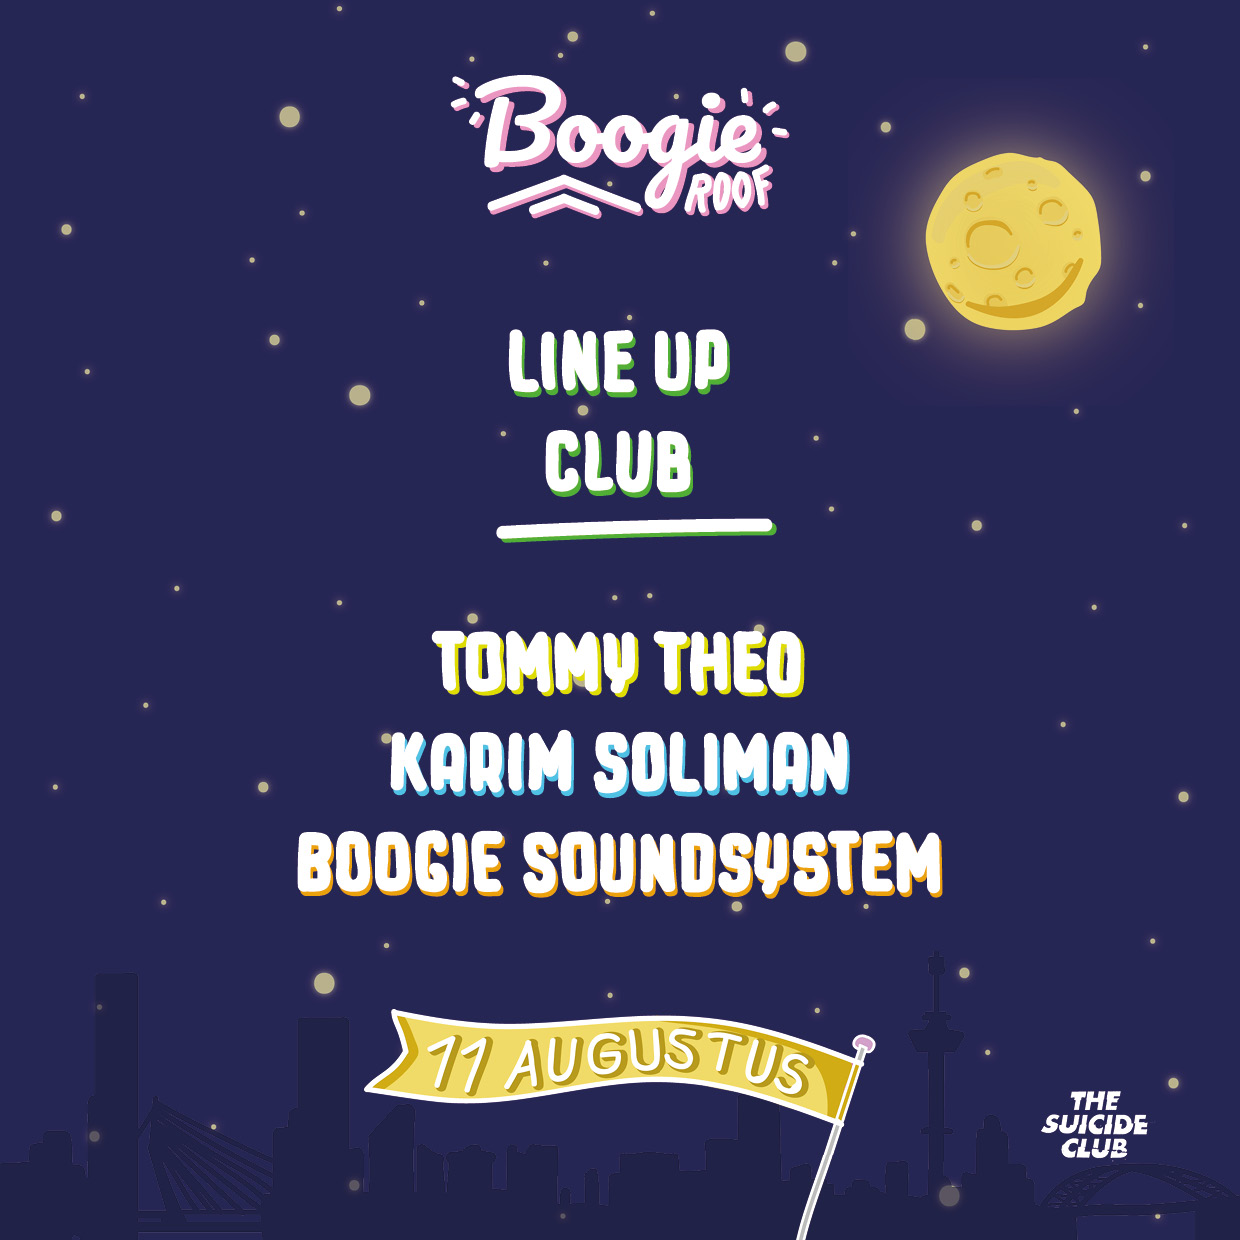 LineUp_Club_boogieroof_boogieexpress_suicideclub